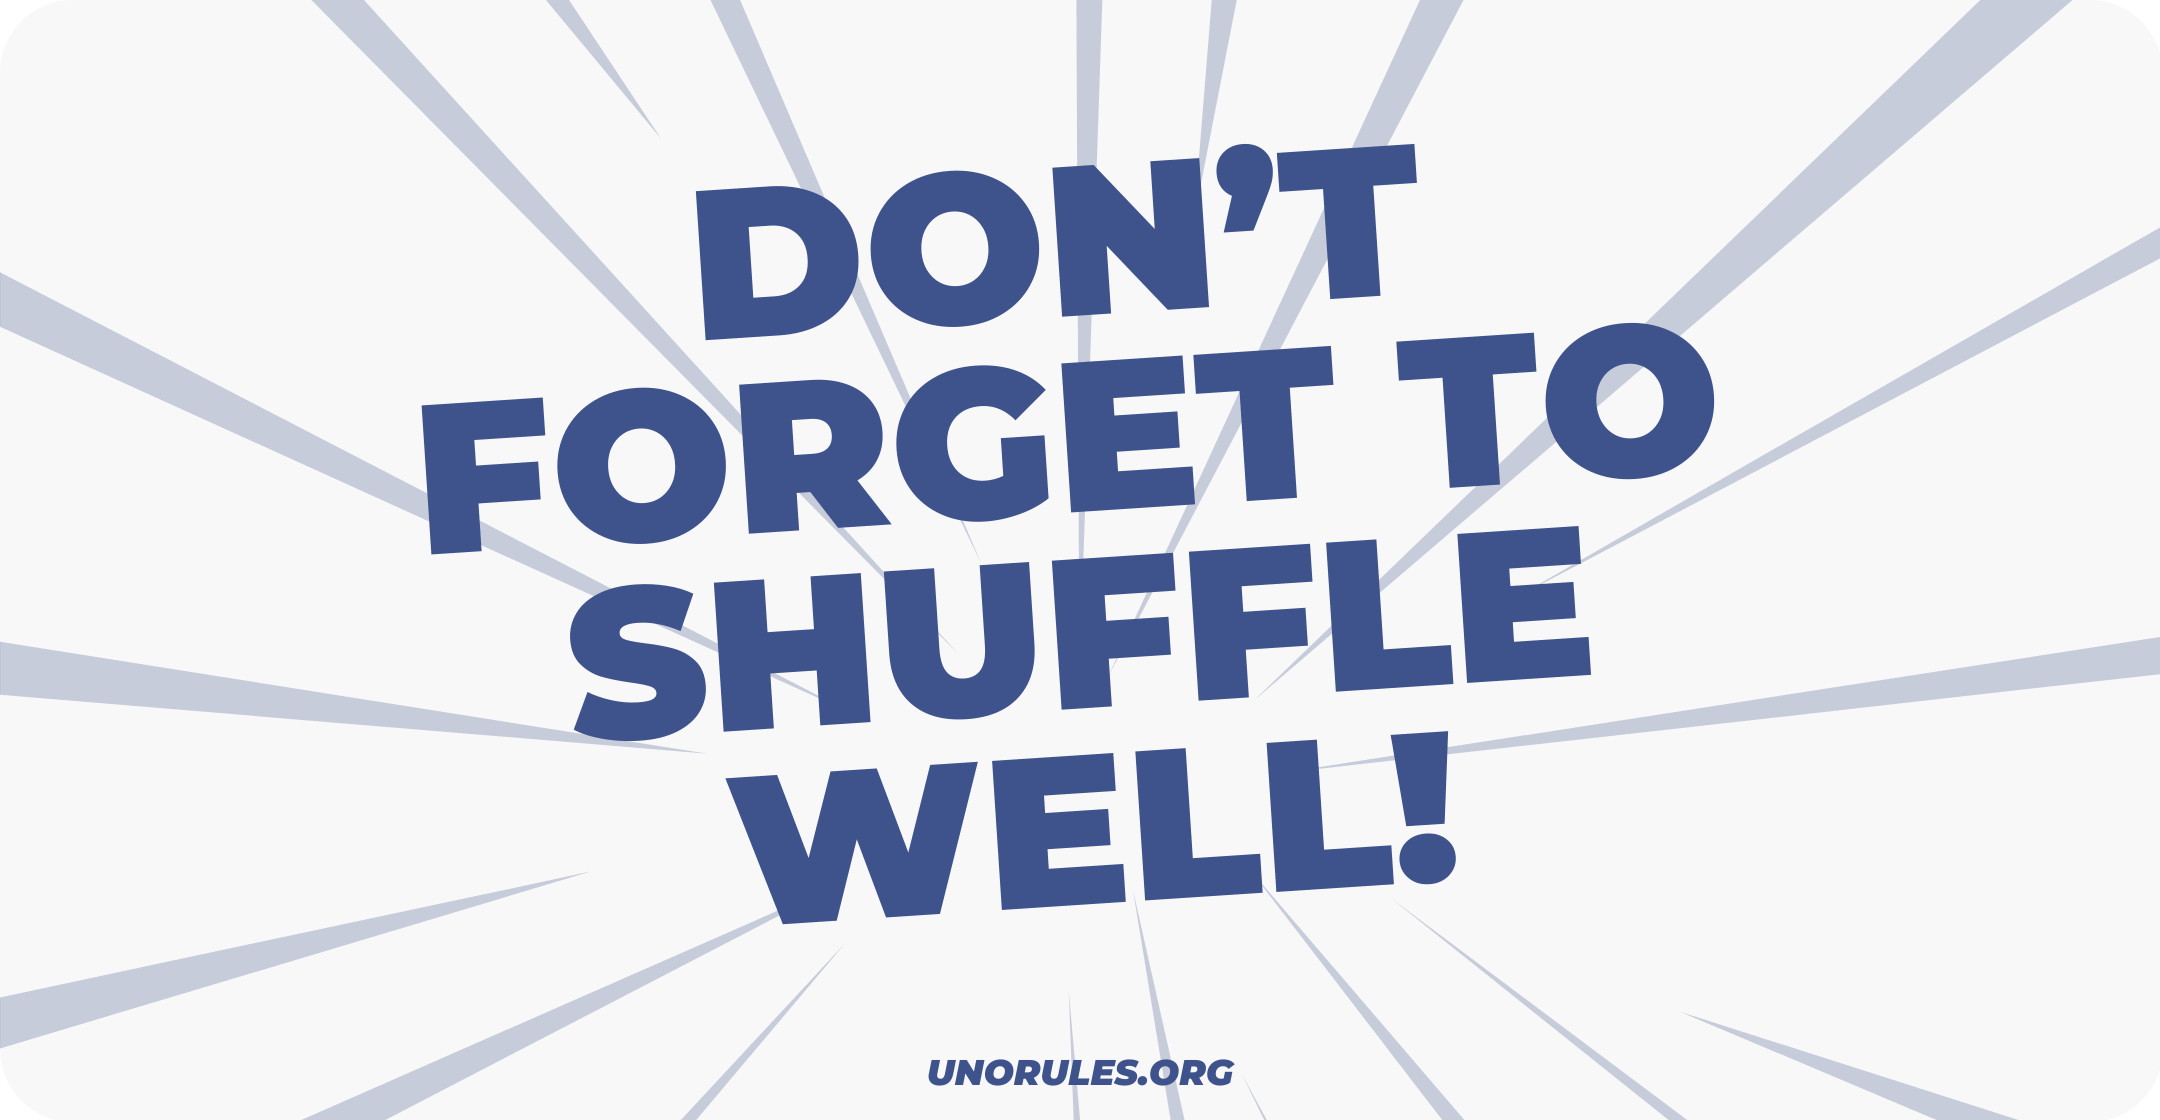 Don't forget to shuffle well!